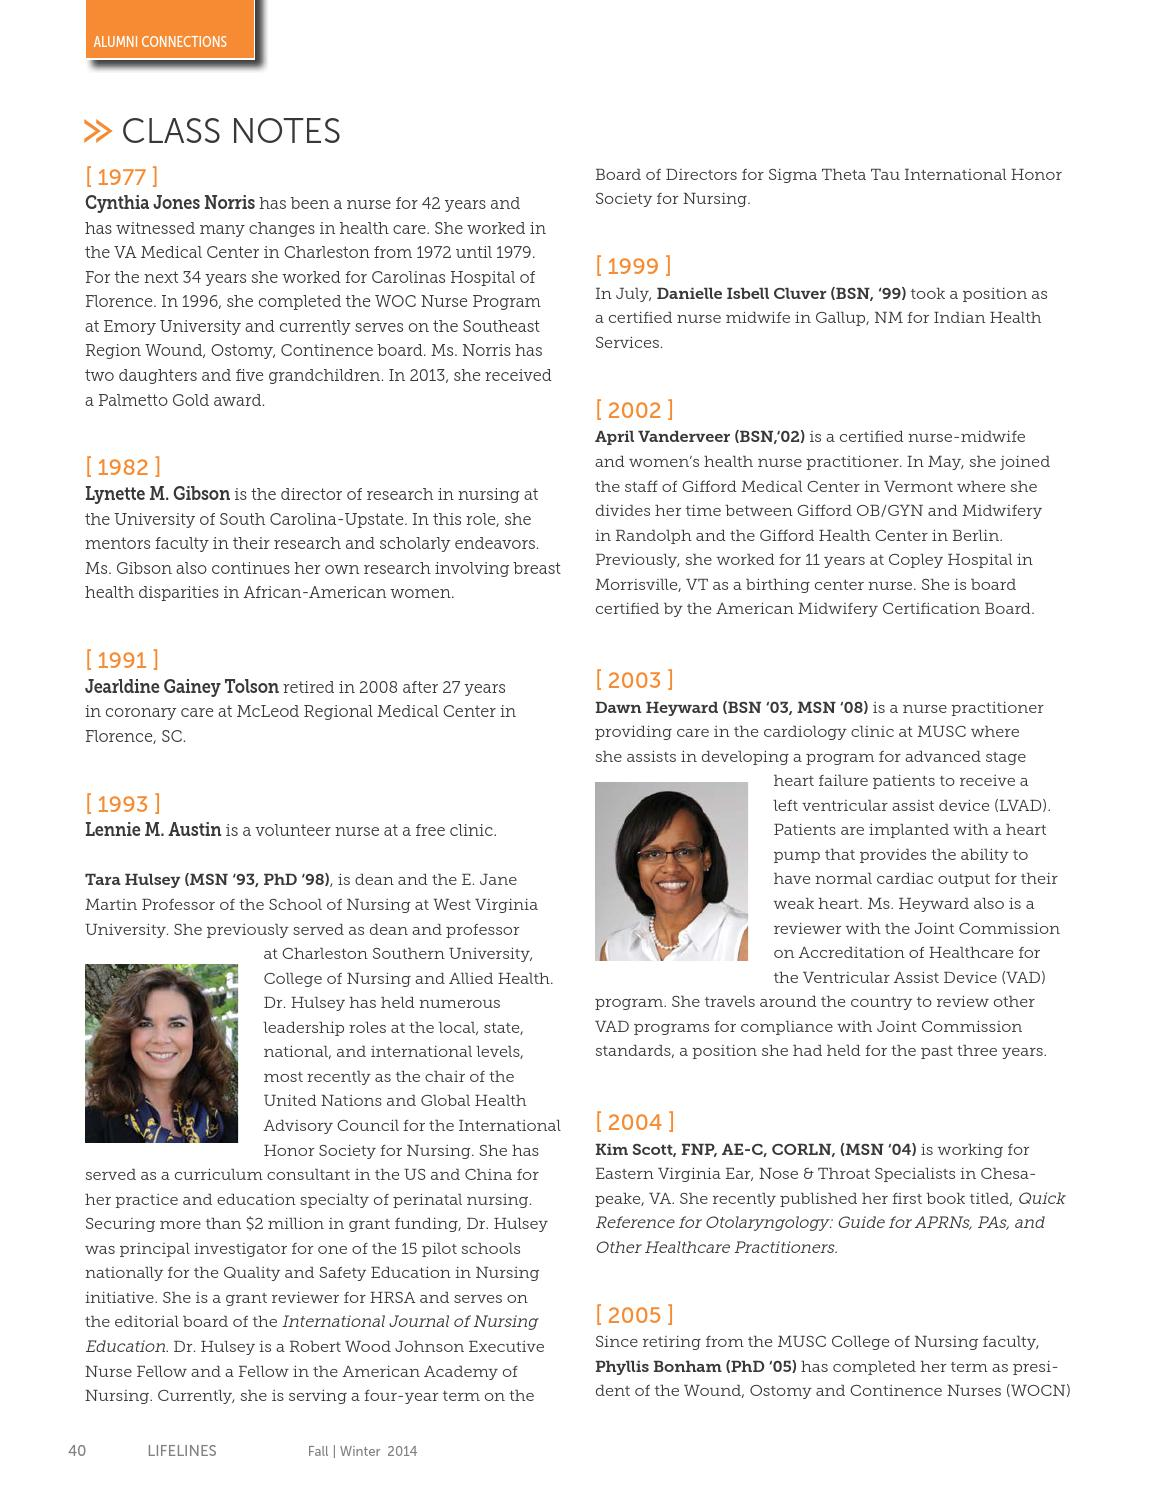 Lifelines Fall Winter 2014 By Musc College Of Nursing Issuu